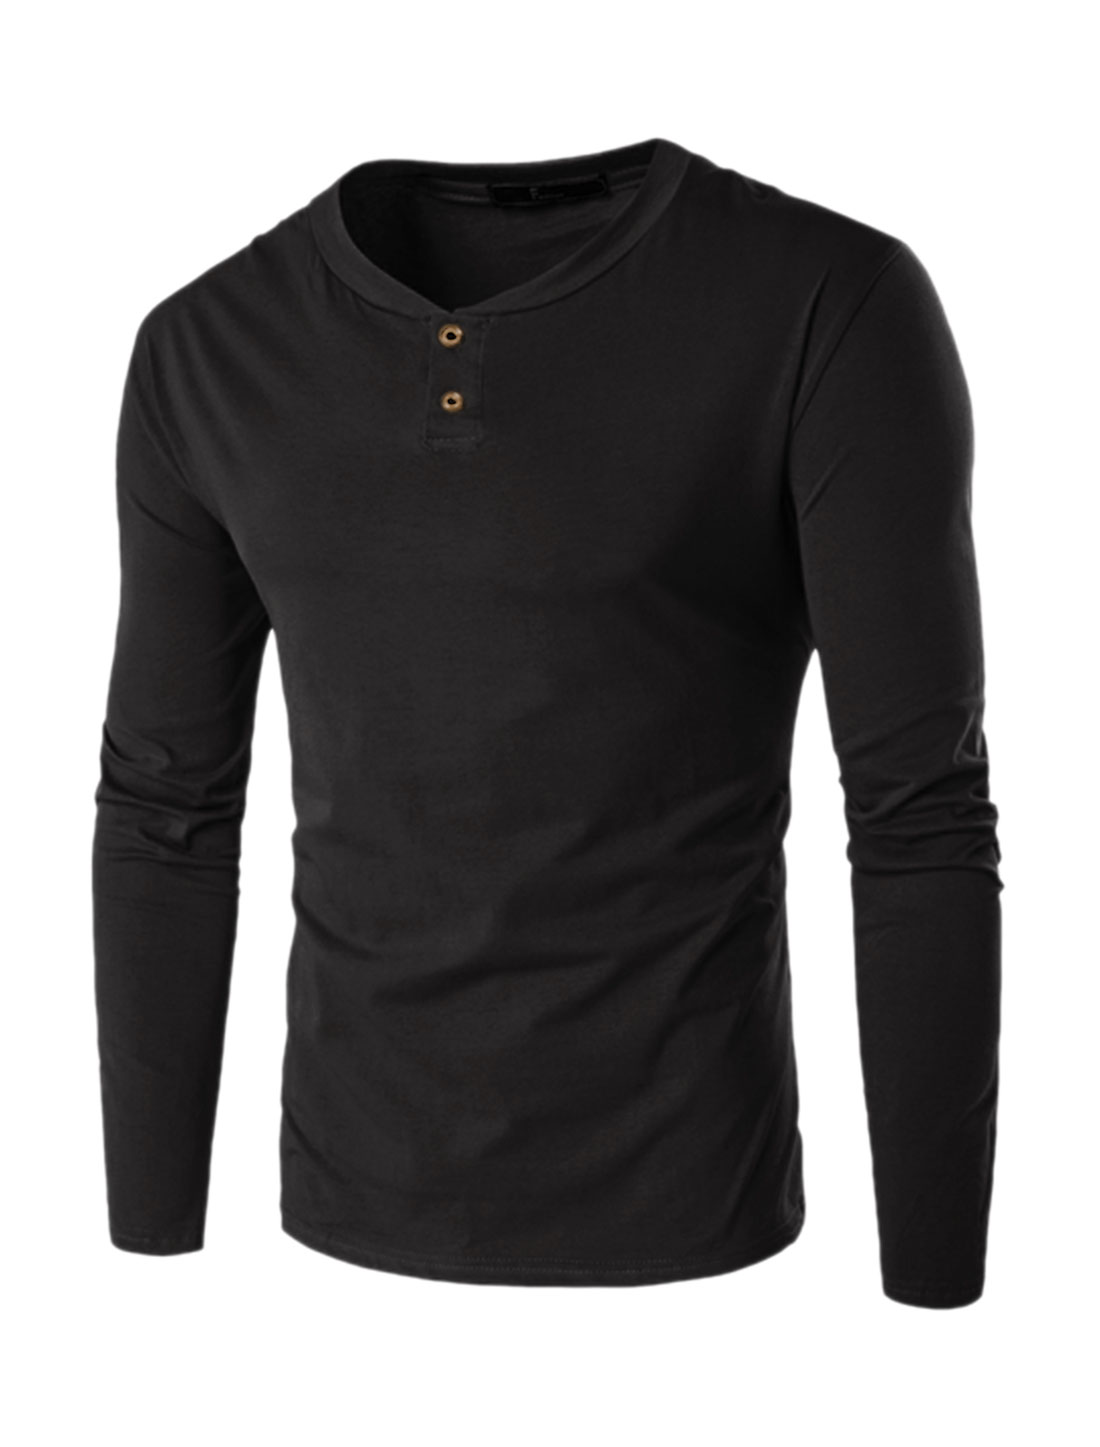 Men Stand Collar Long Sleeves Slim Fit Henley Shirt Black L